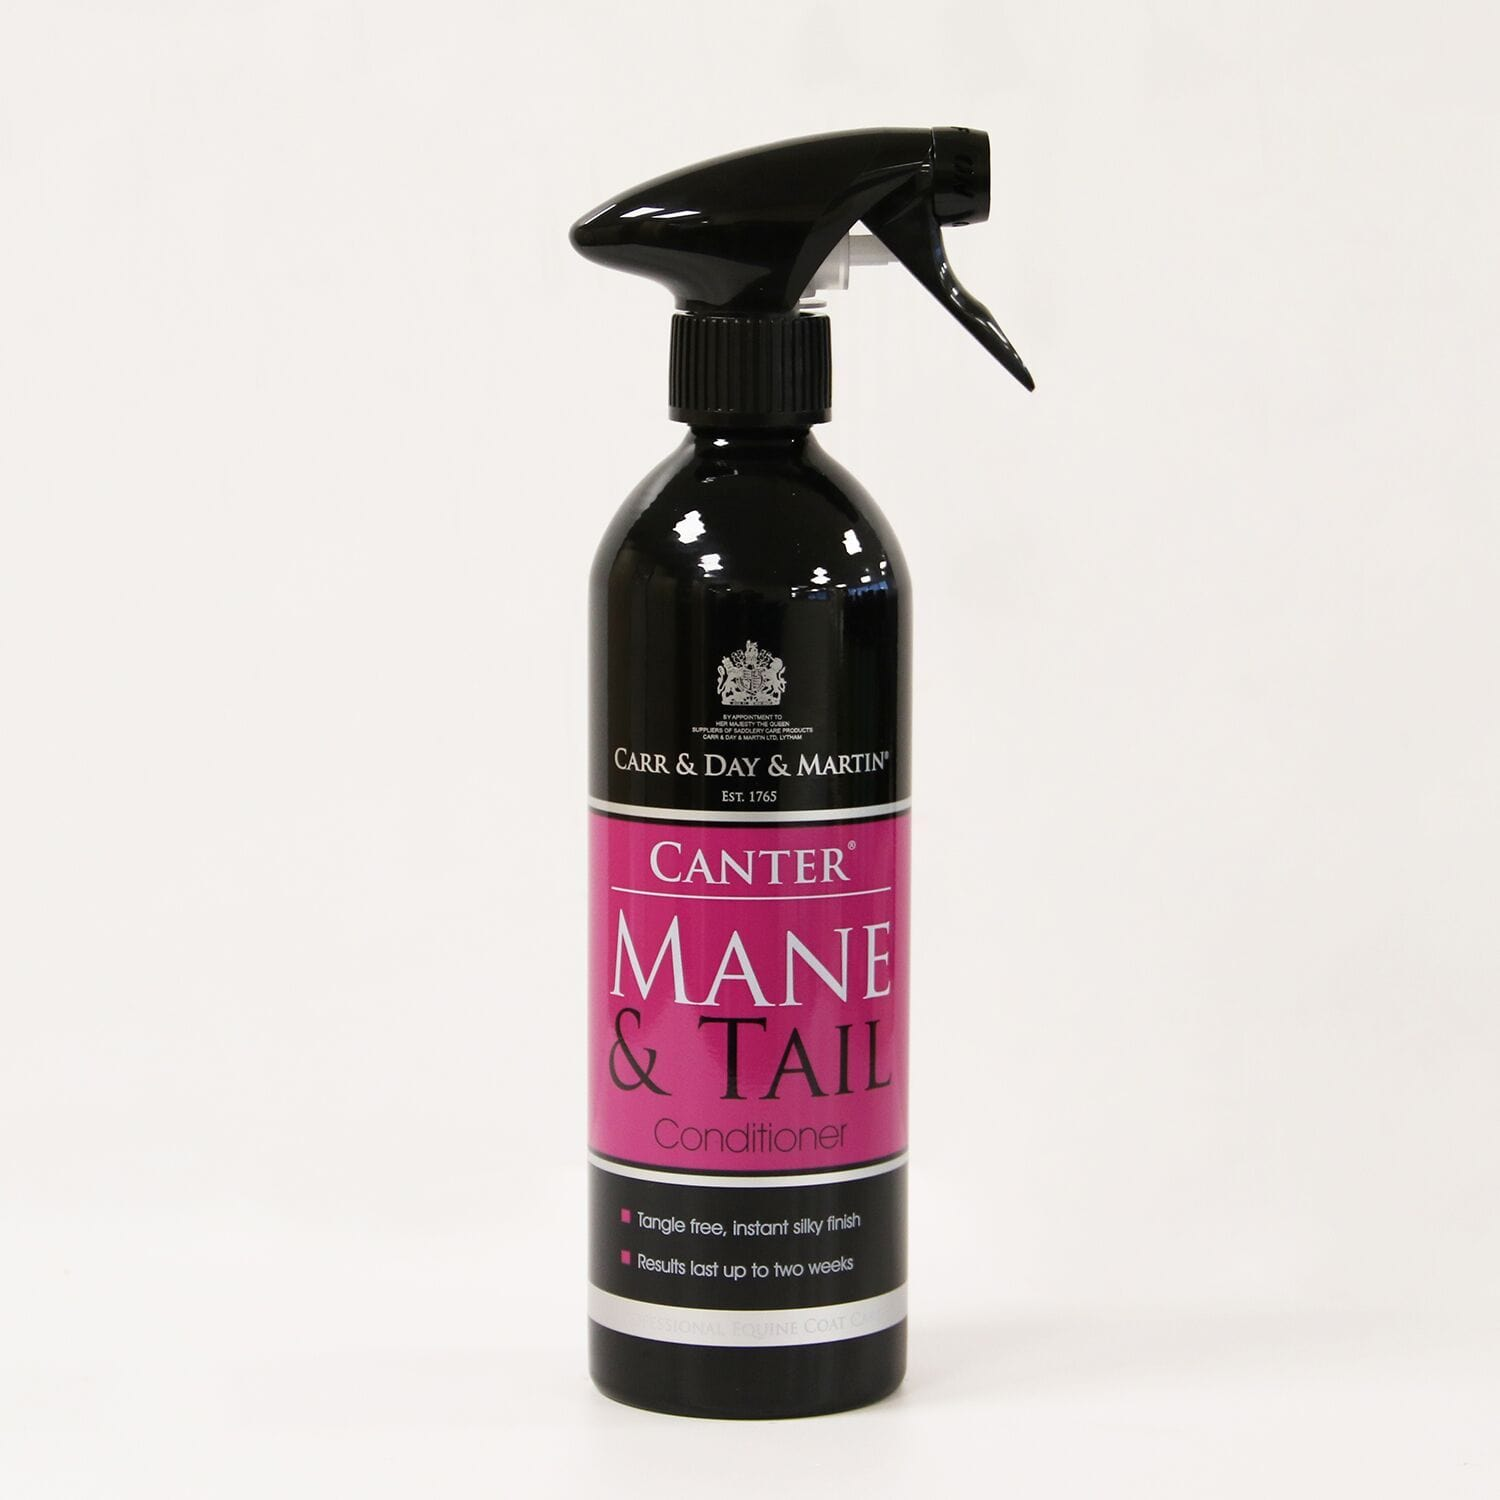 Carr & Day & Martin Canter Mane and Tail Conditioner 500ml